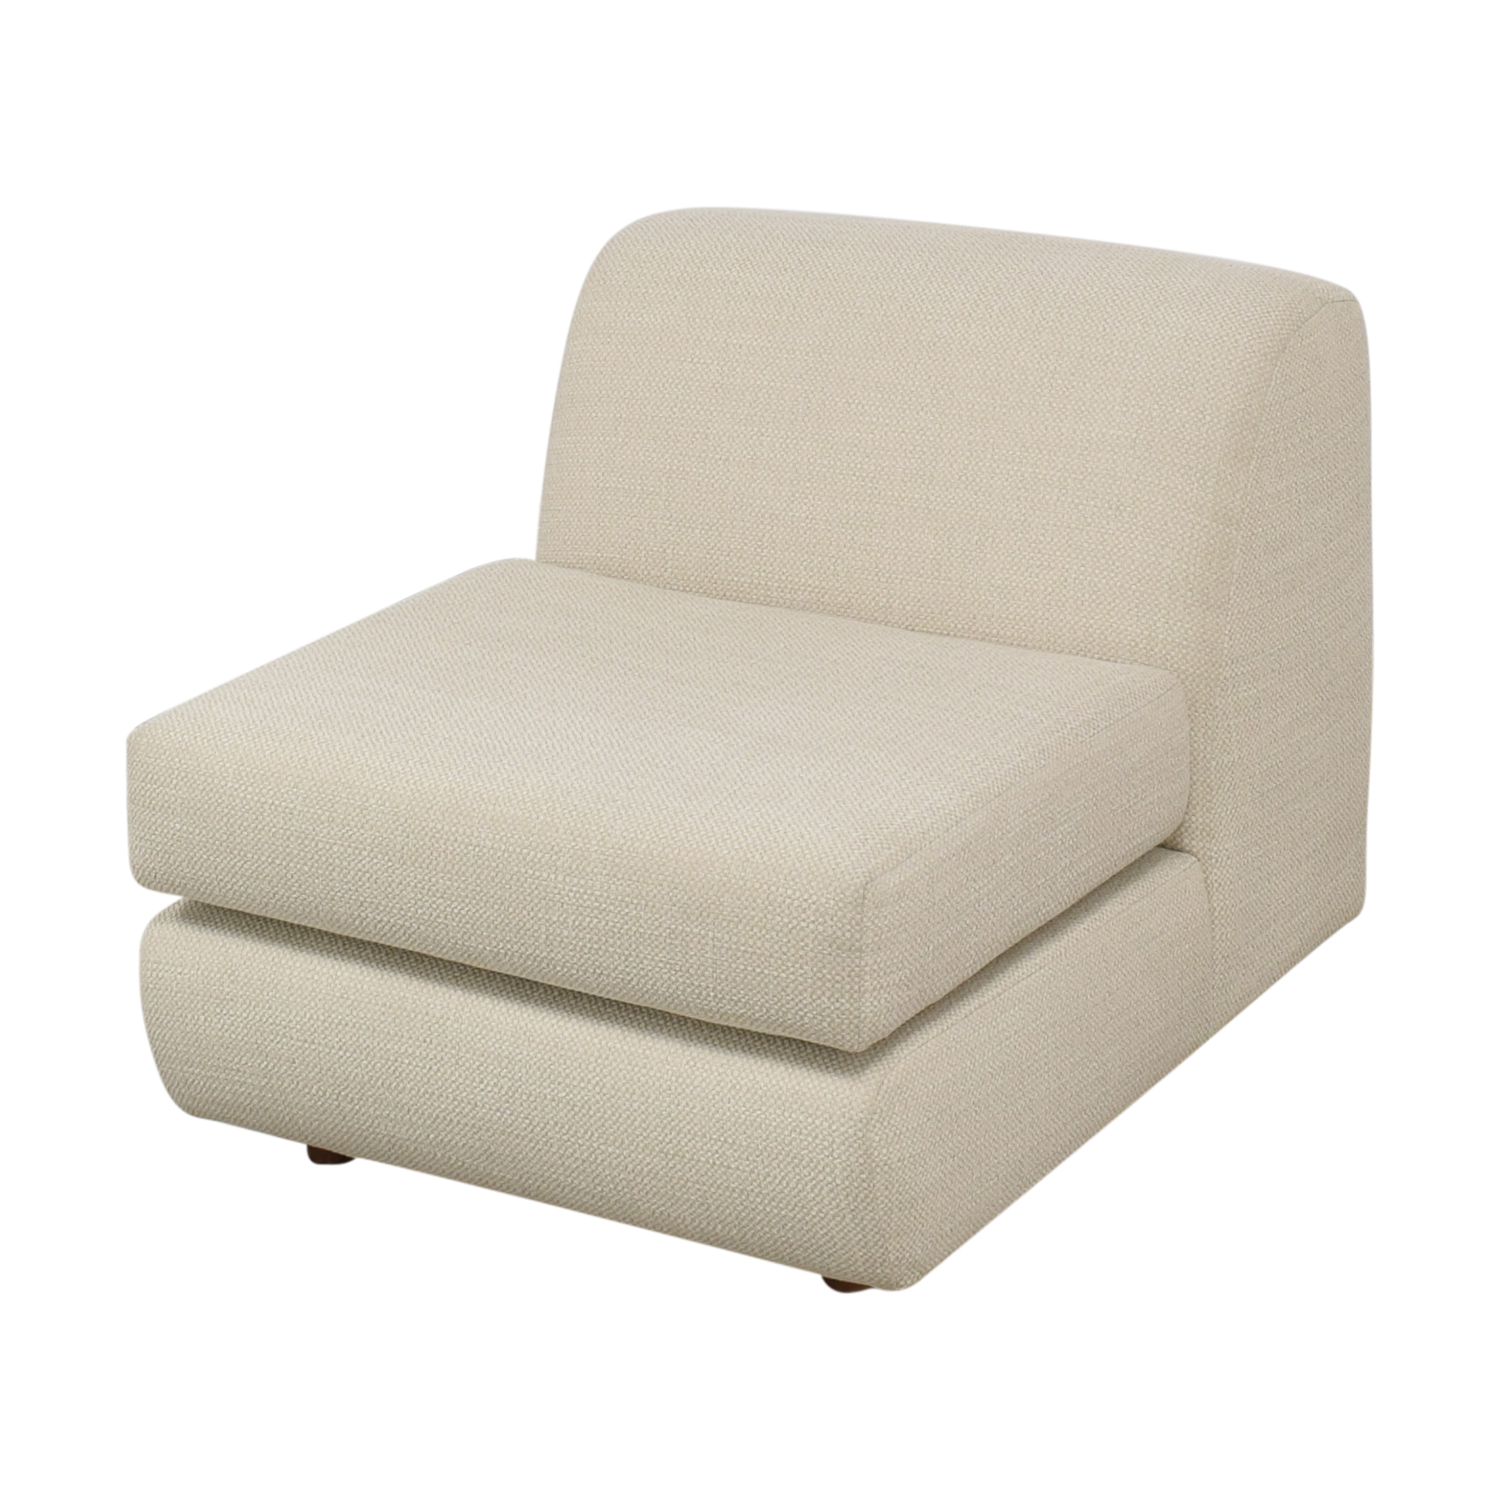 shop Steve Chase Slipper Chair Steve Chase Furniture Chairs